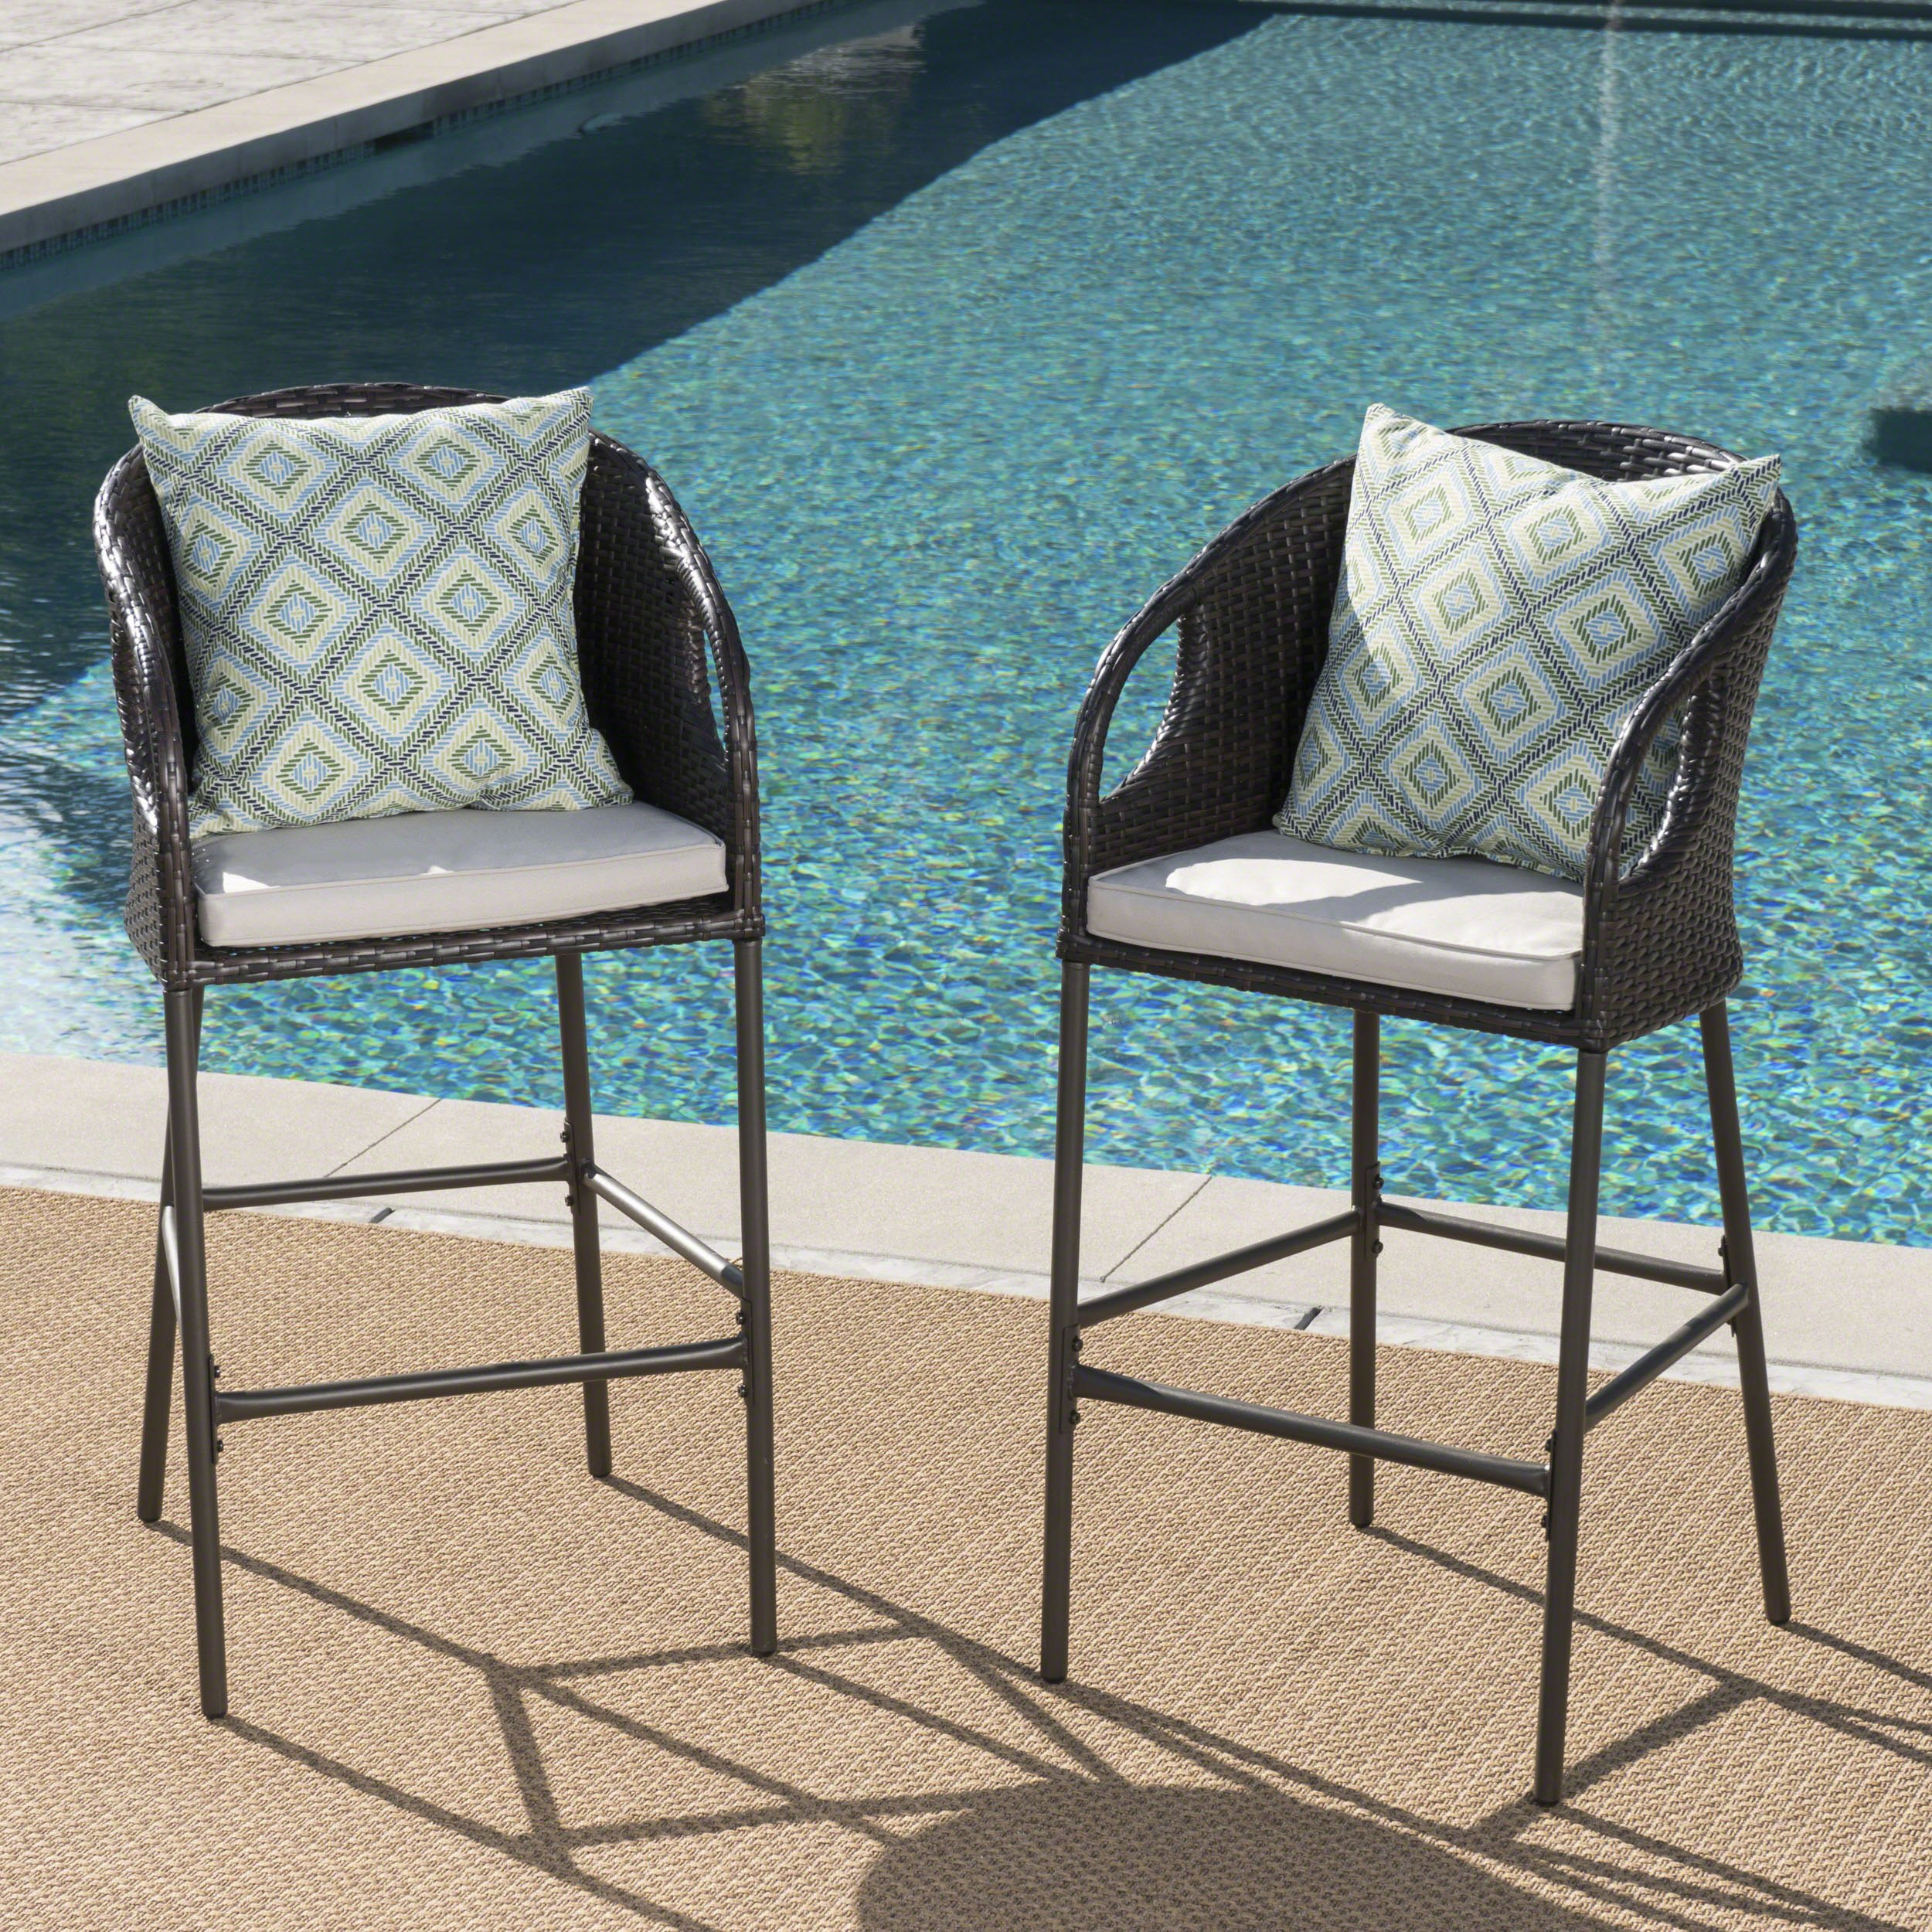 Dunlevy Outdoor Multibrown Wicker Barstools with Light Brown Water Resistant Cushions (Set of 2) by Great Deal Furniture